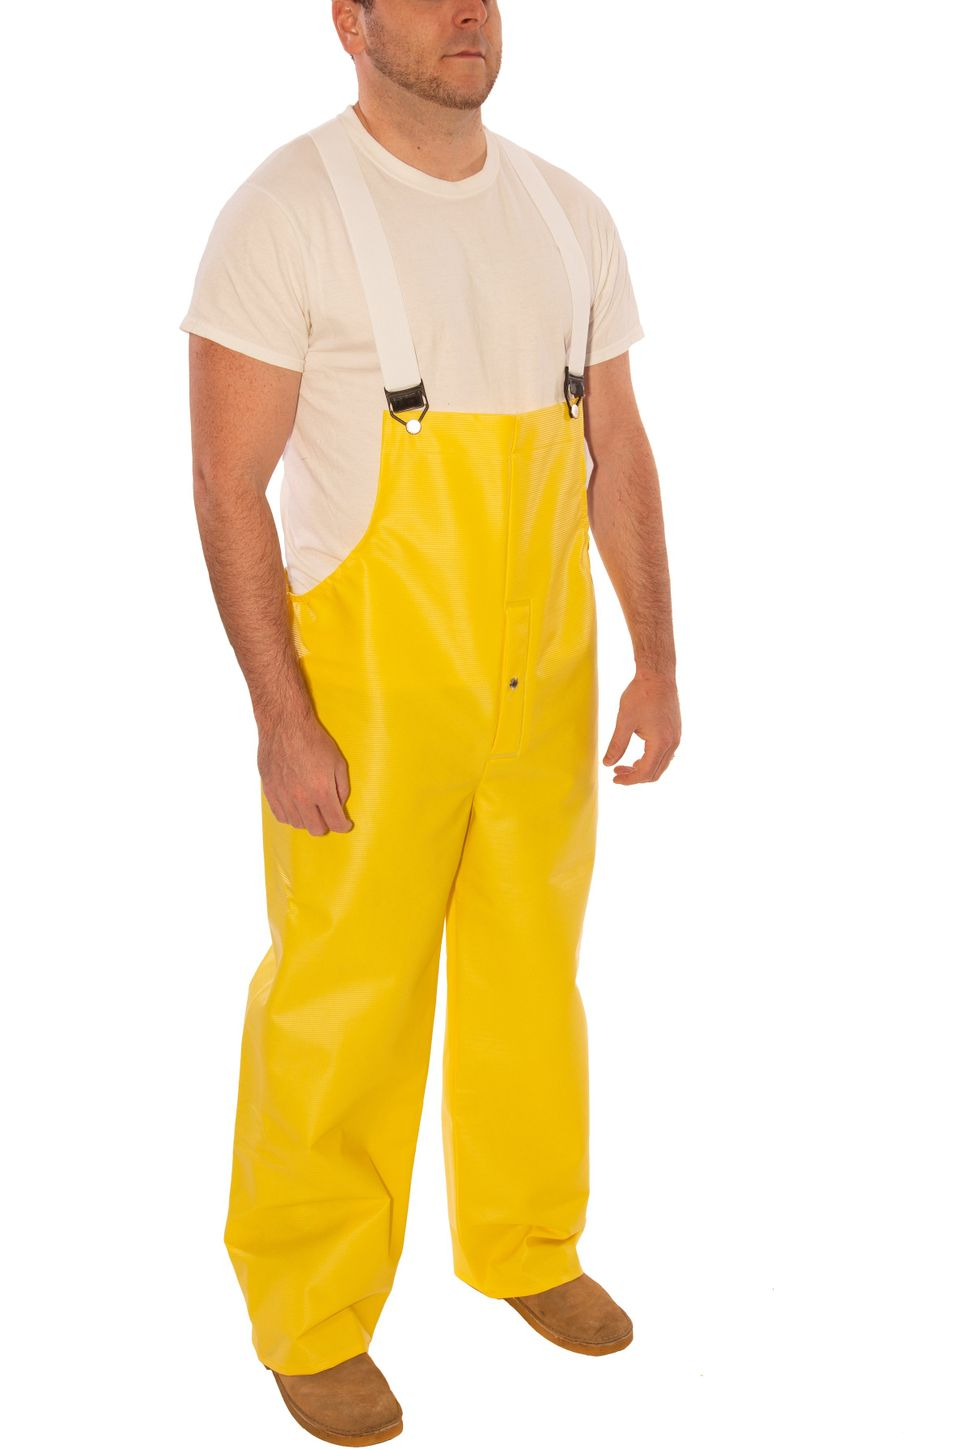 tingley-o31107-webdri-chemical-resistant-overalls-pvc-coated-tear-resistant-snap-fly-front-side.jpg